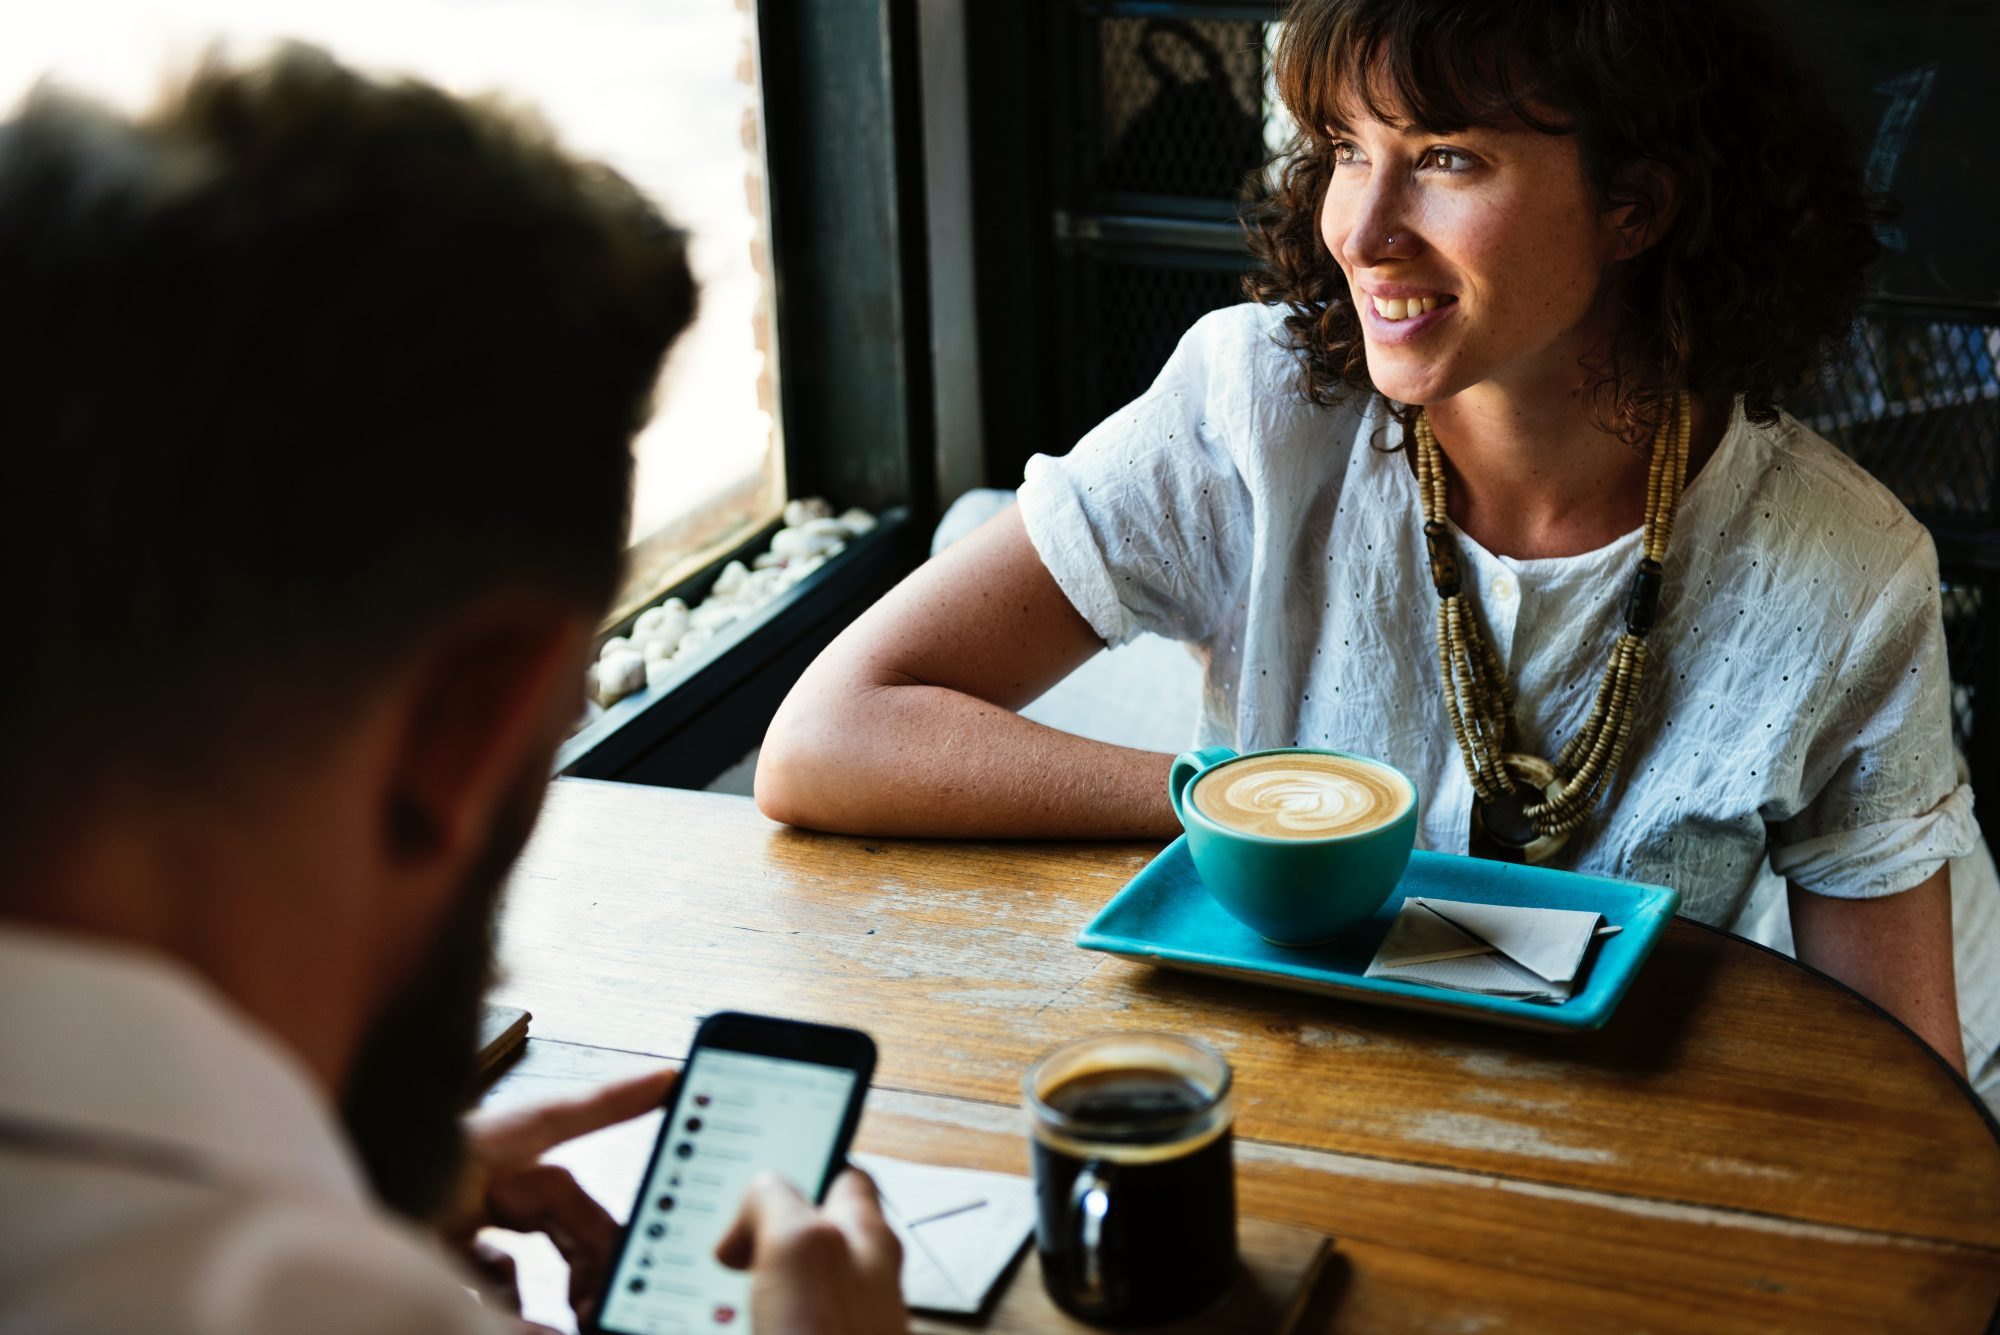 woman-with-cup-of-coffee-sits-across-from-date